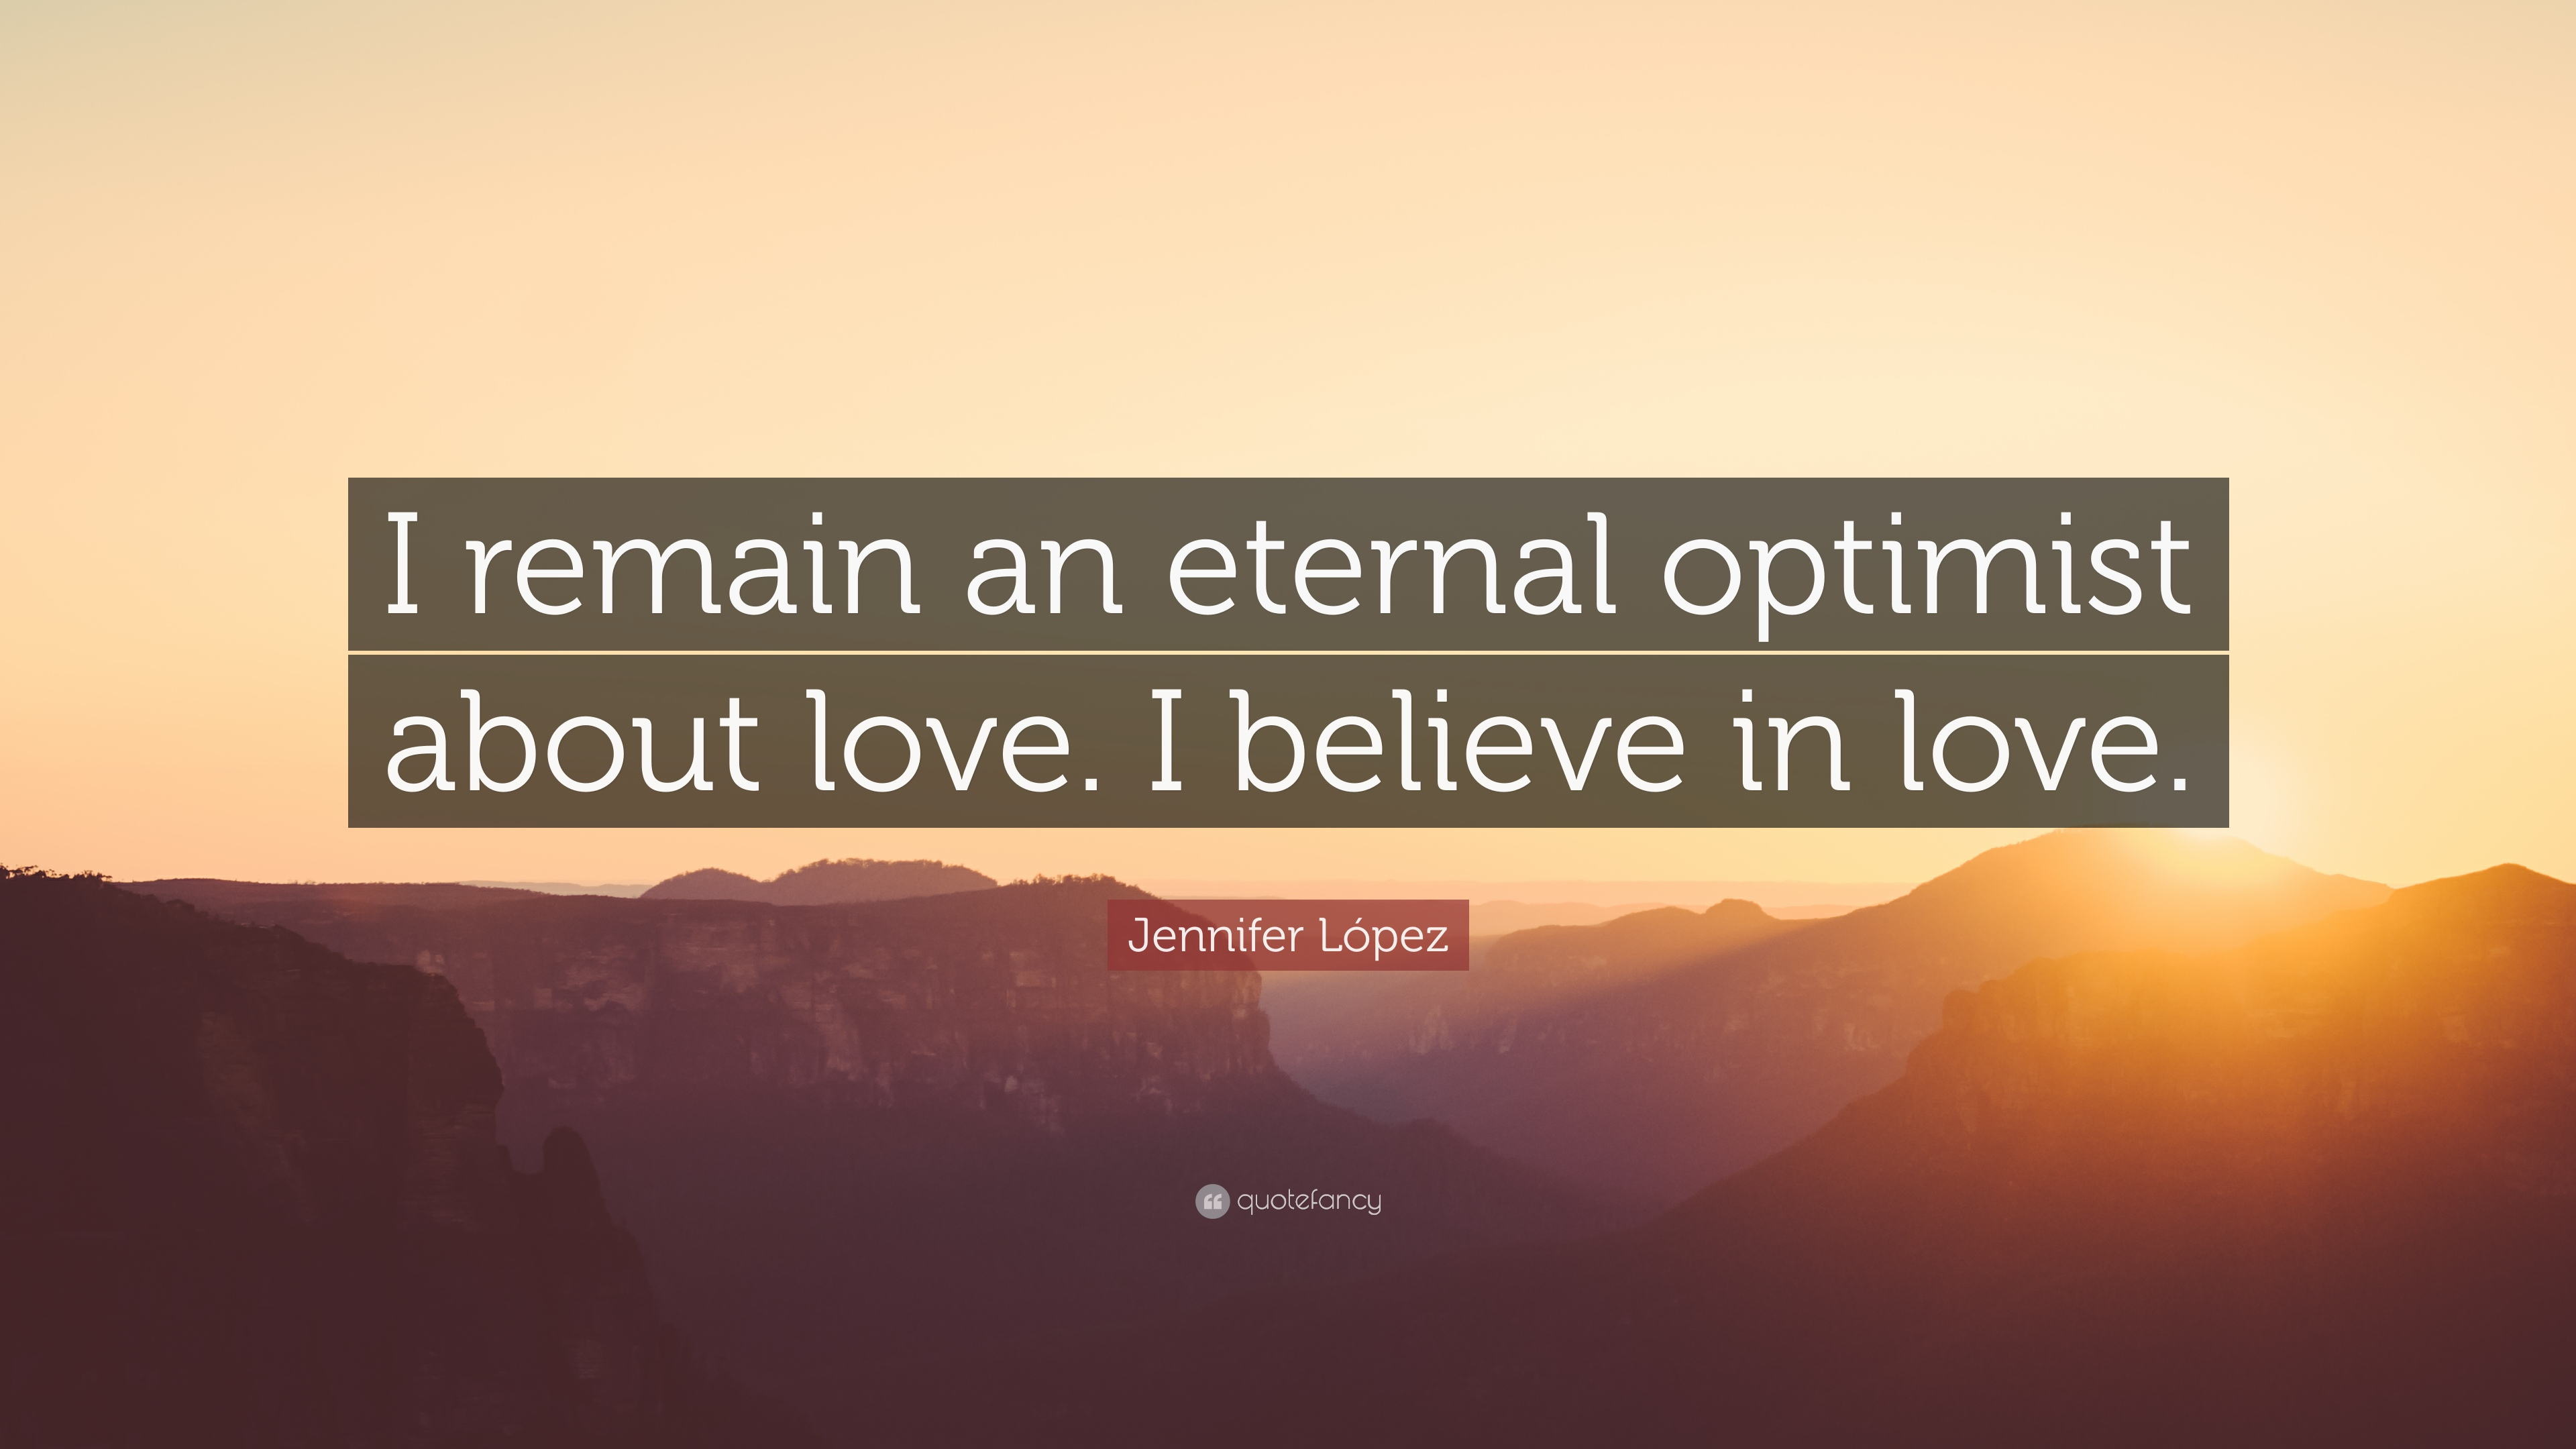 Jennifer López Quote: U201cI Remain An Eternal Optimist About Love. I Believe In